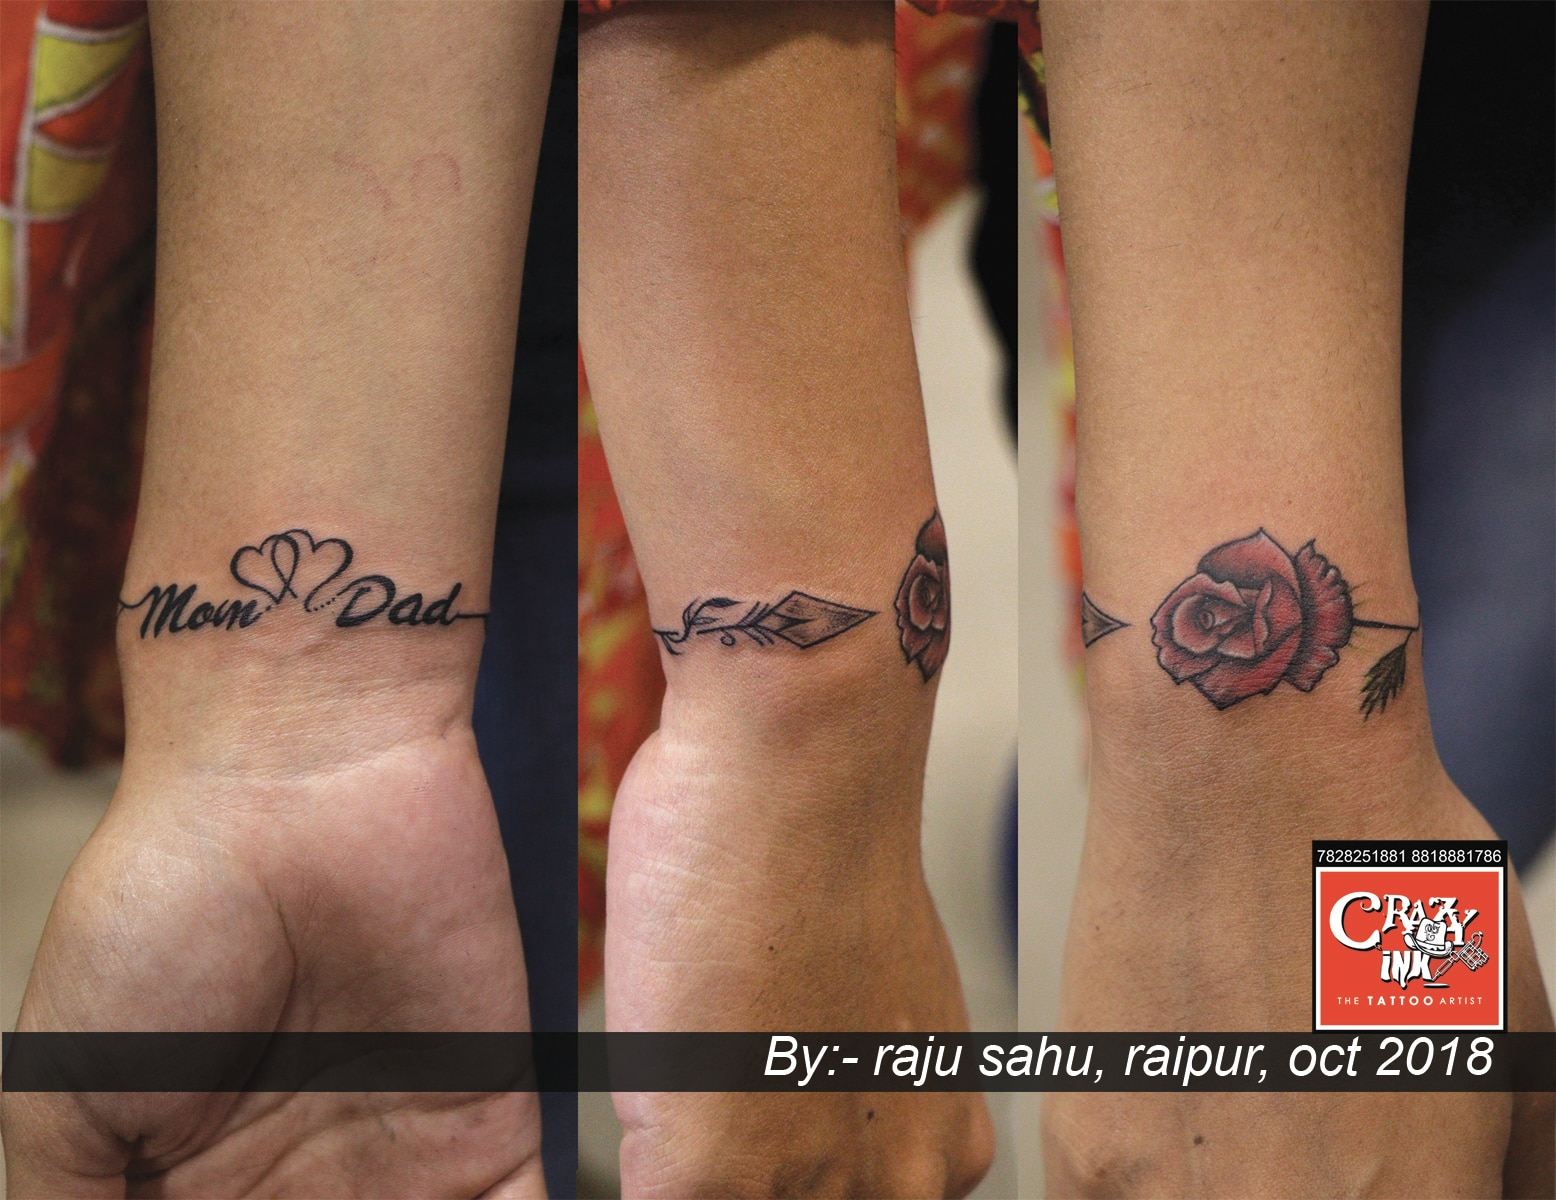 This mom dad tattoo ideas   CRAZY INK TATTOO & BODY PIERCING in ...